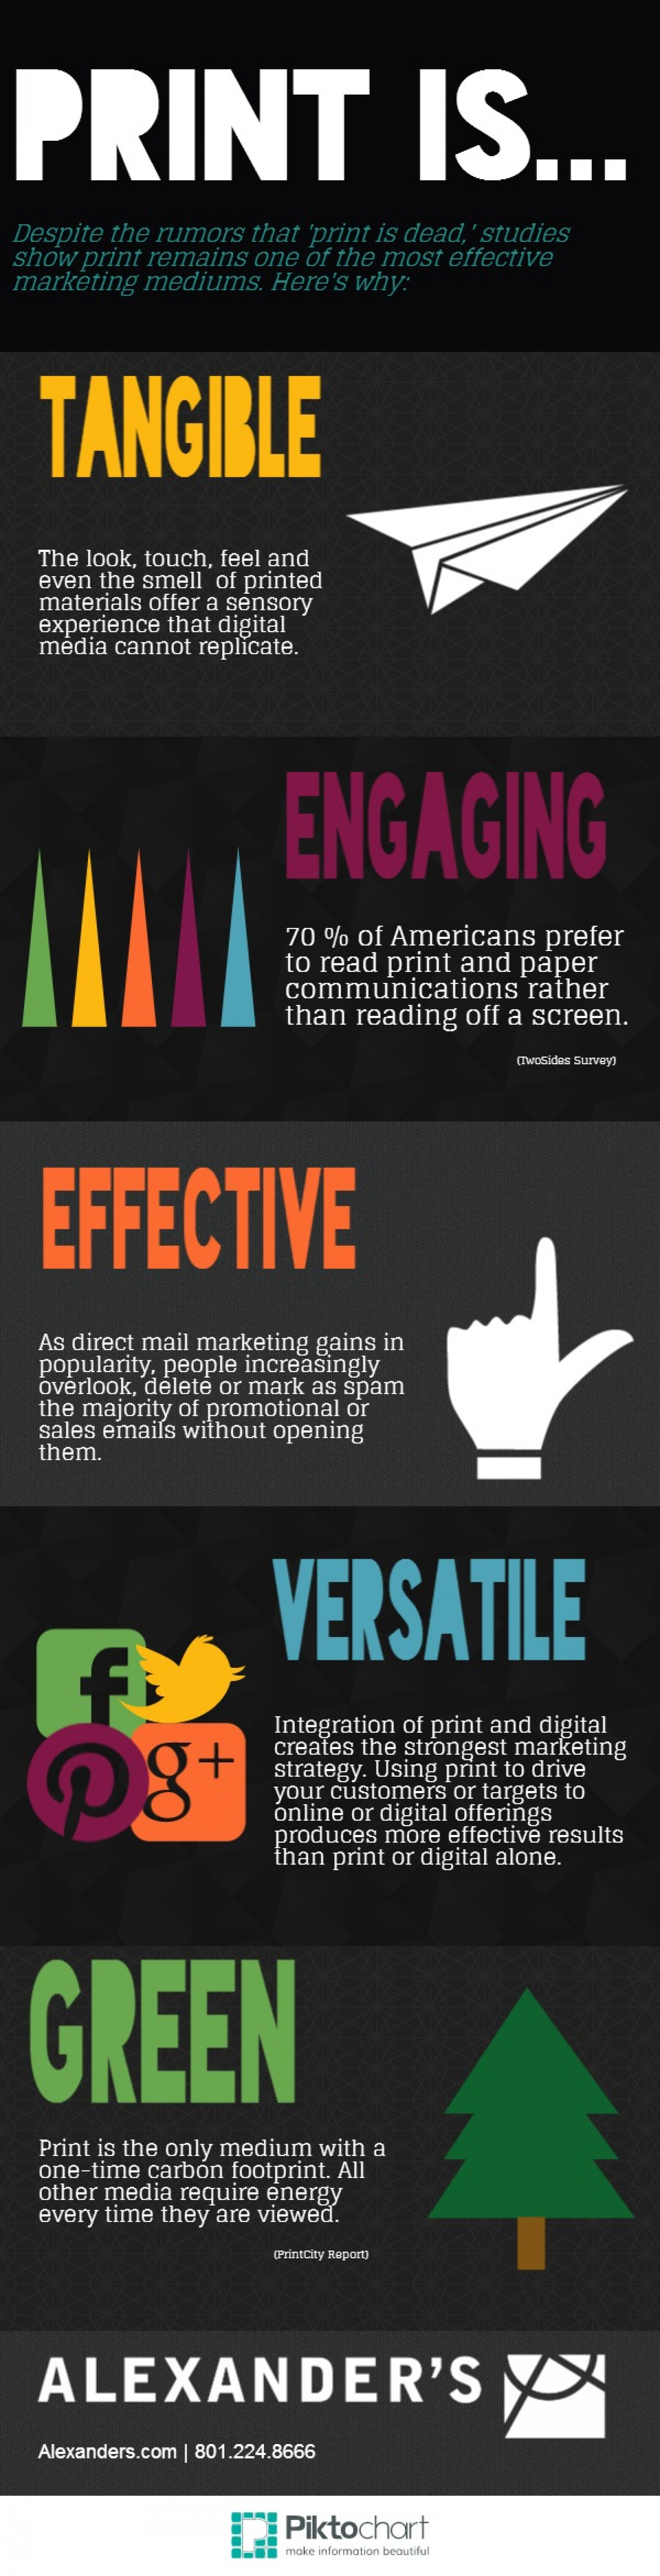 Print is not dead Infographic